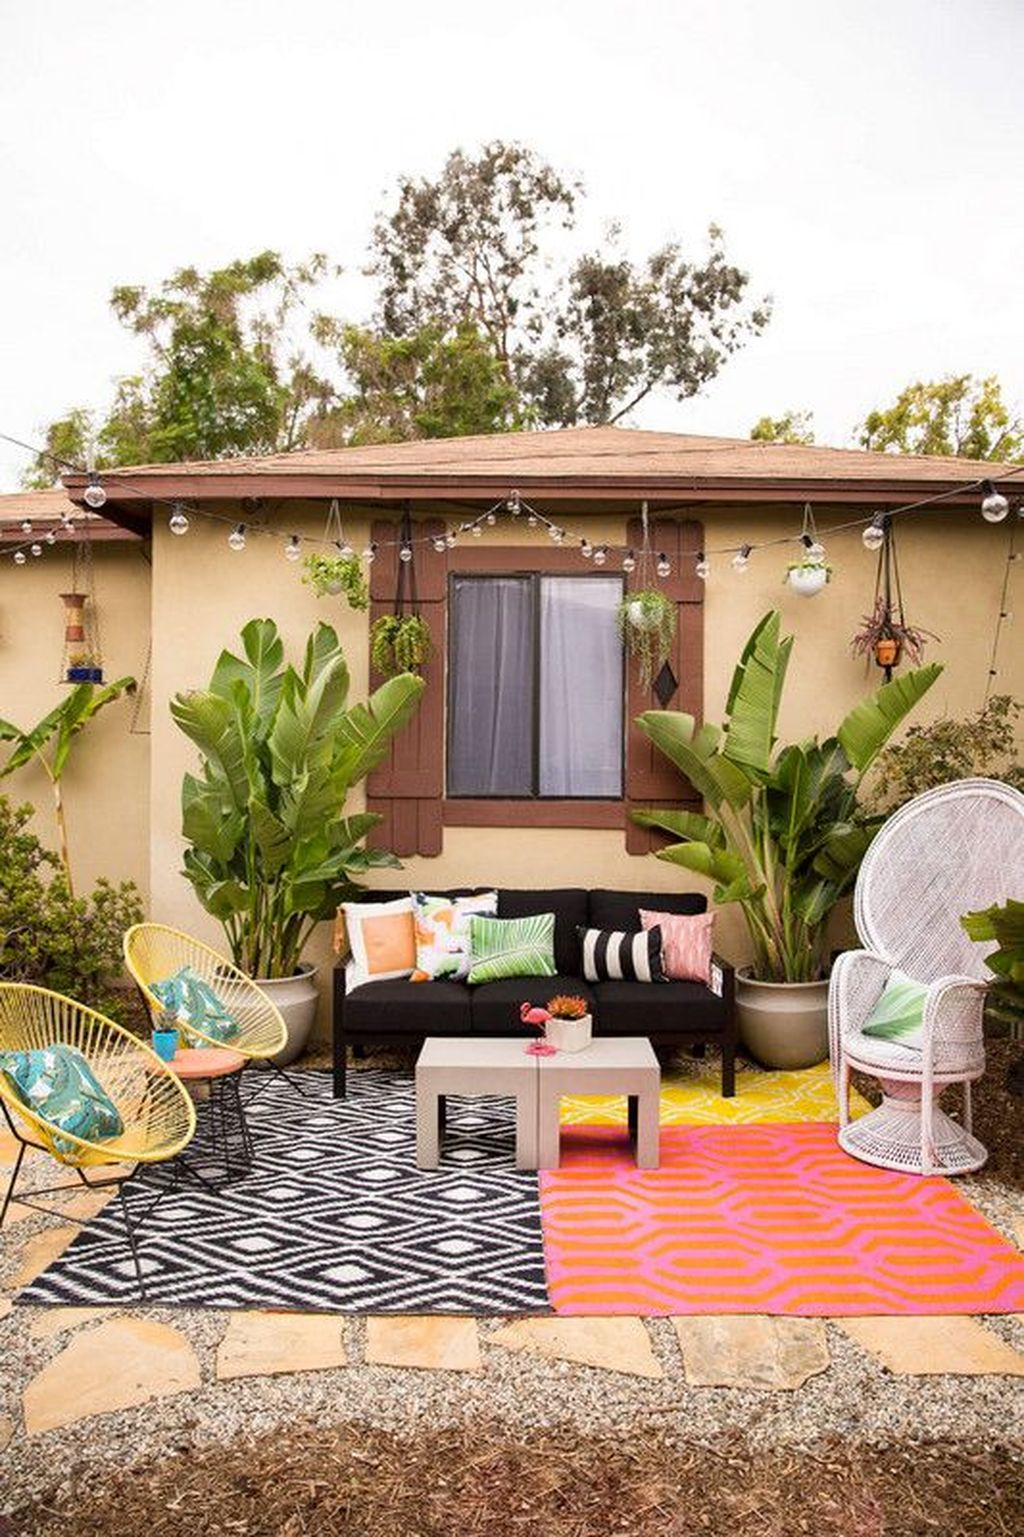 Inspiring Boho Outdoor Decorating Ideas For Backyard43